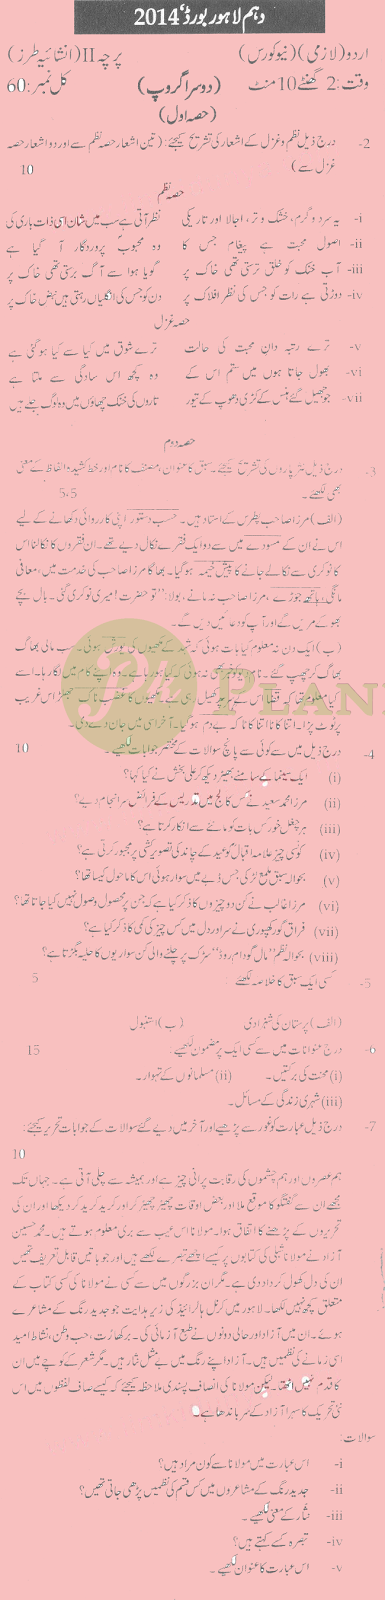 Past Papers of Urdu 10th Class Lahore Board 2014